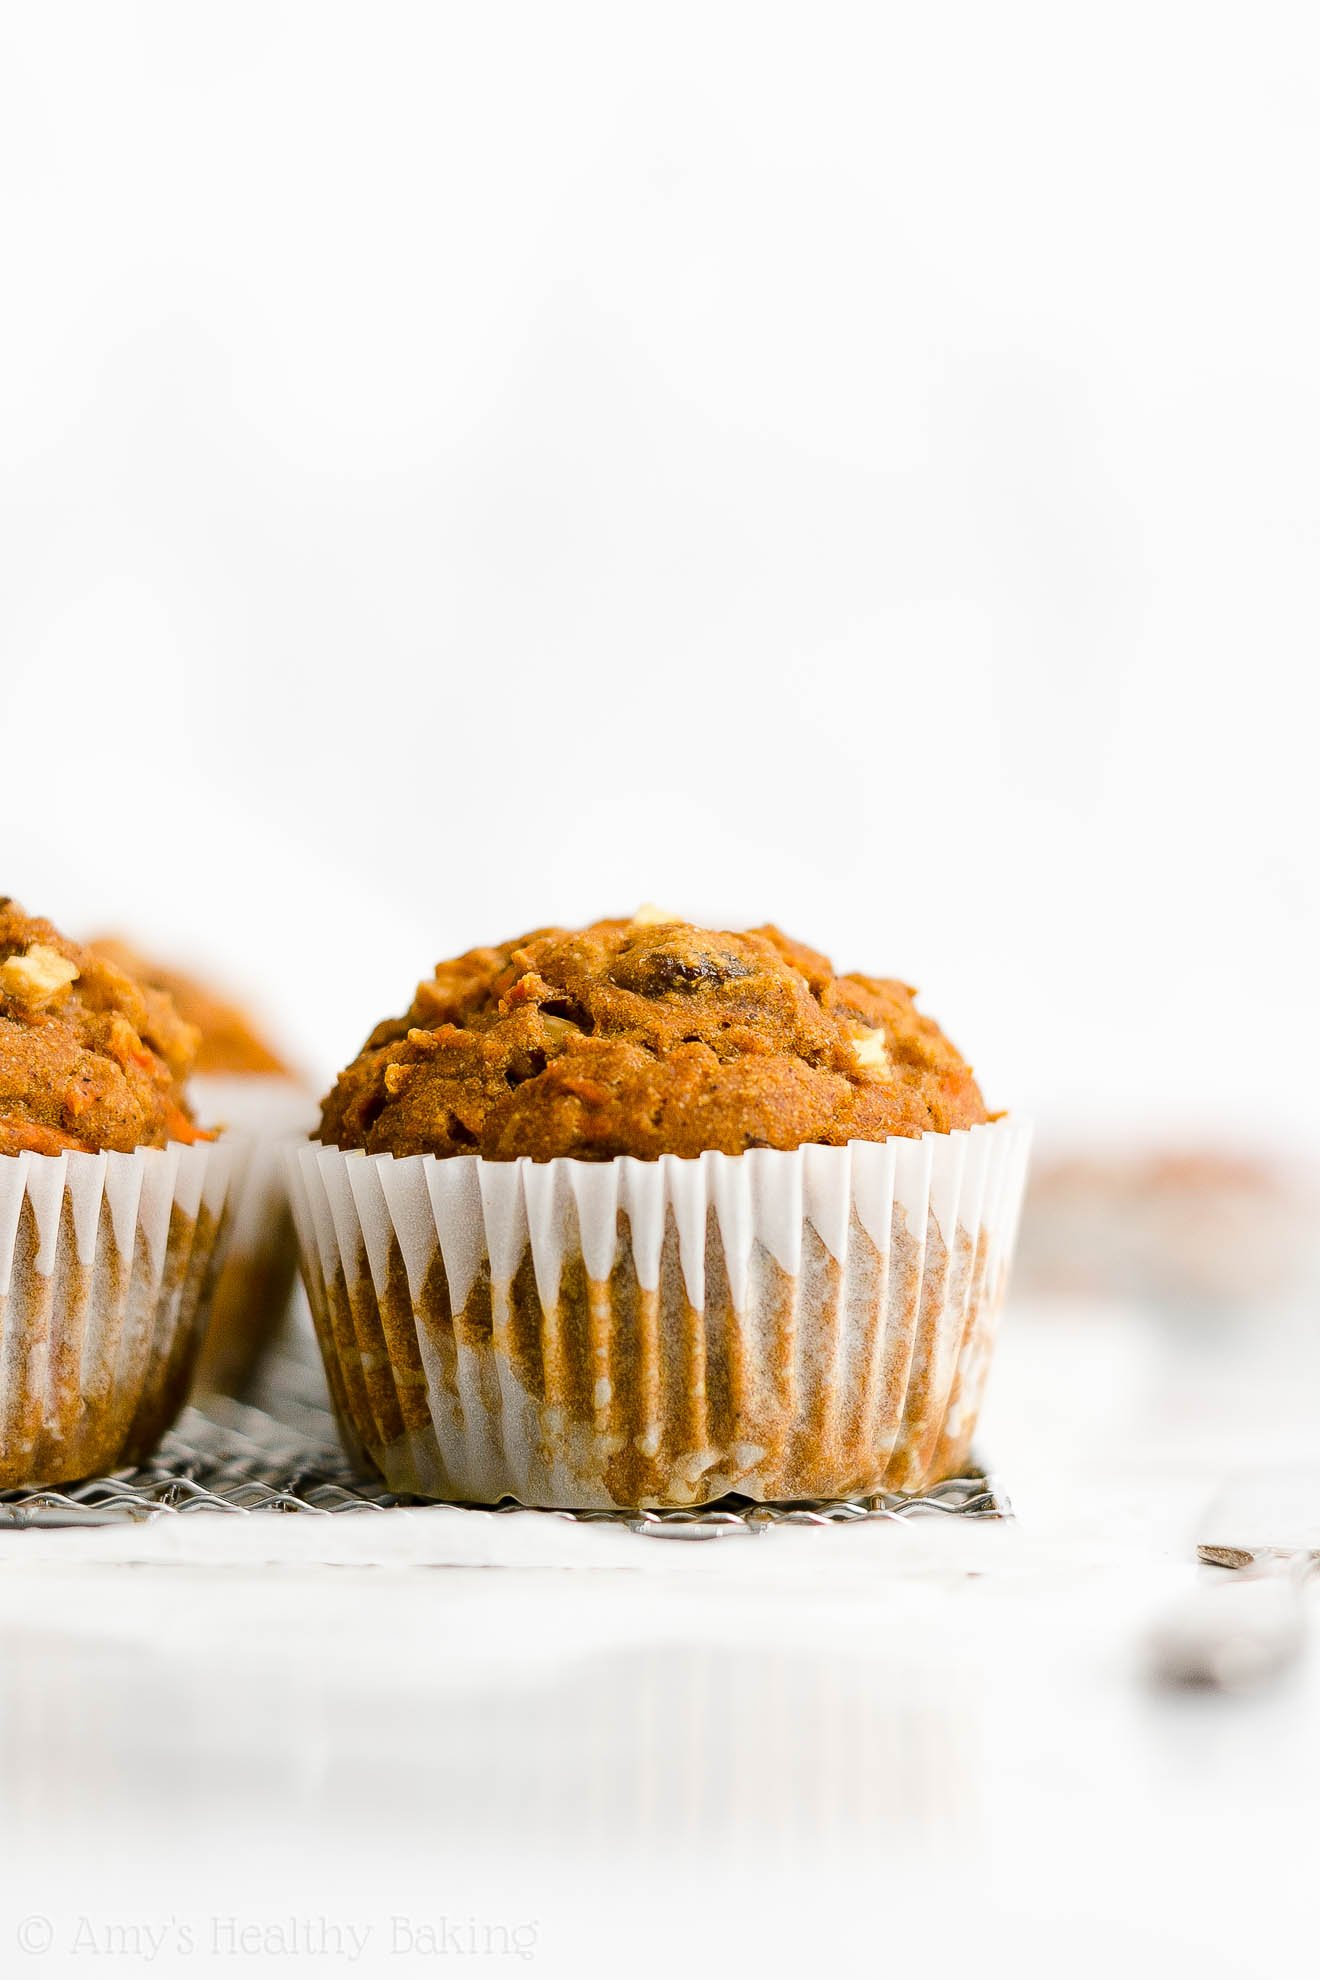 Best Easy Healthy Low Fat Low Sugar Moist Pumpkin Spice Morning Glory Muffins